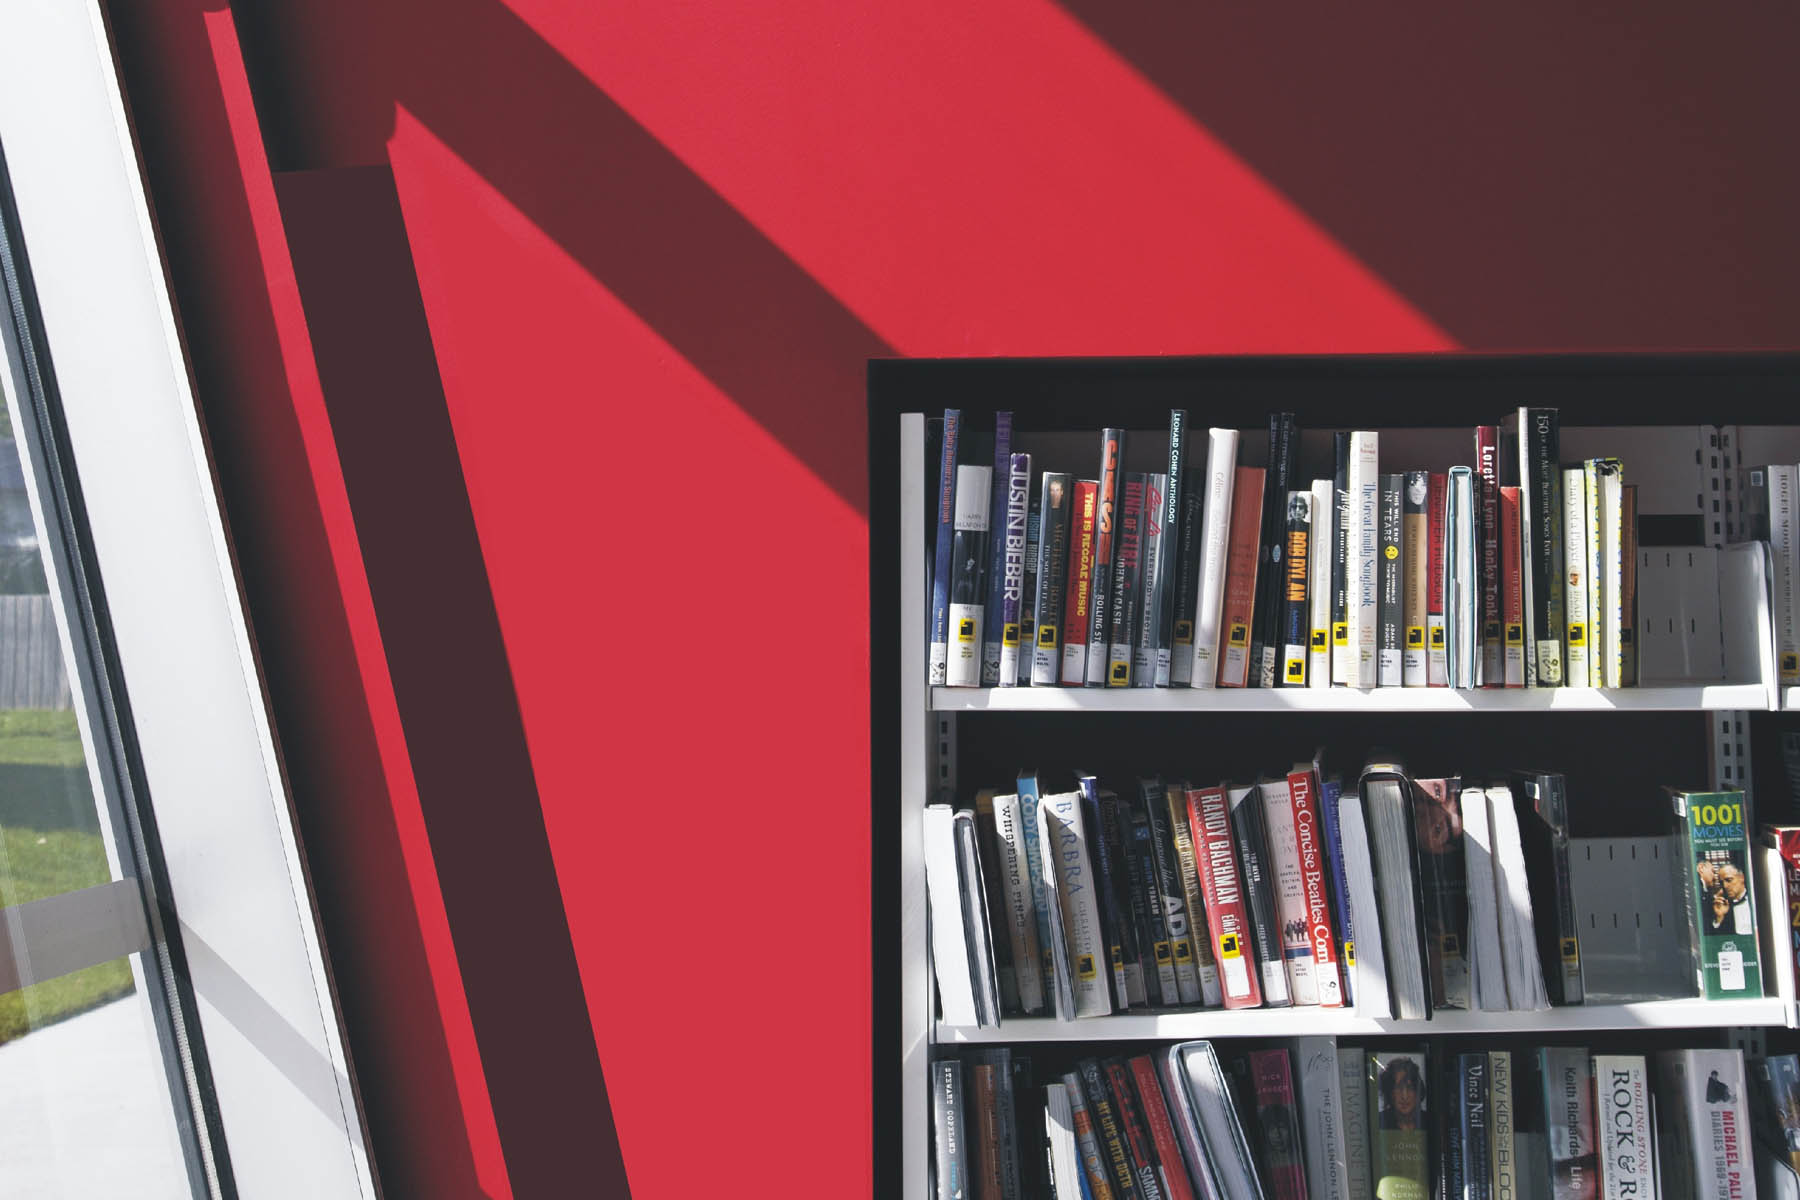 Bookshelf next to slanted glazed wall with sun casting shadows on red painted wall